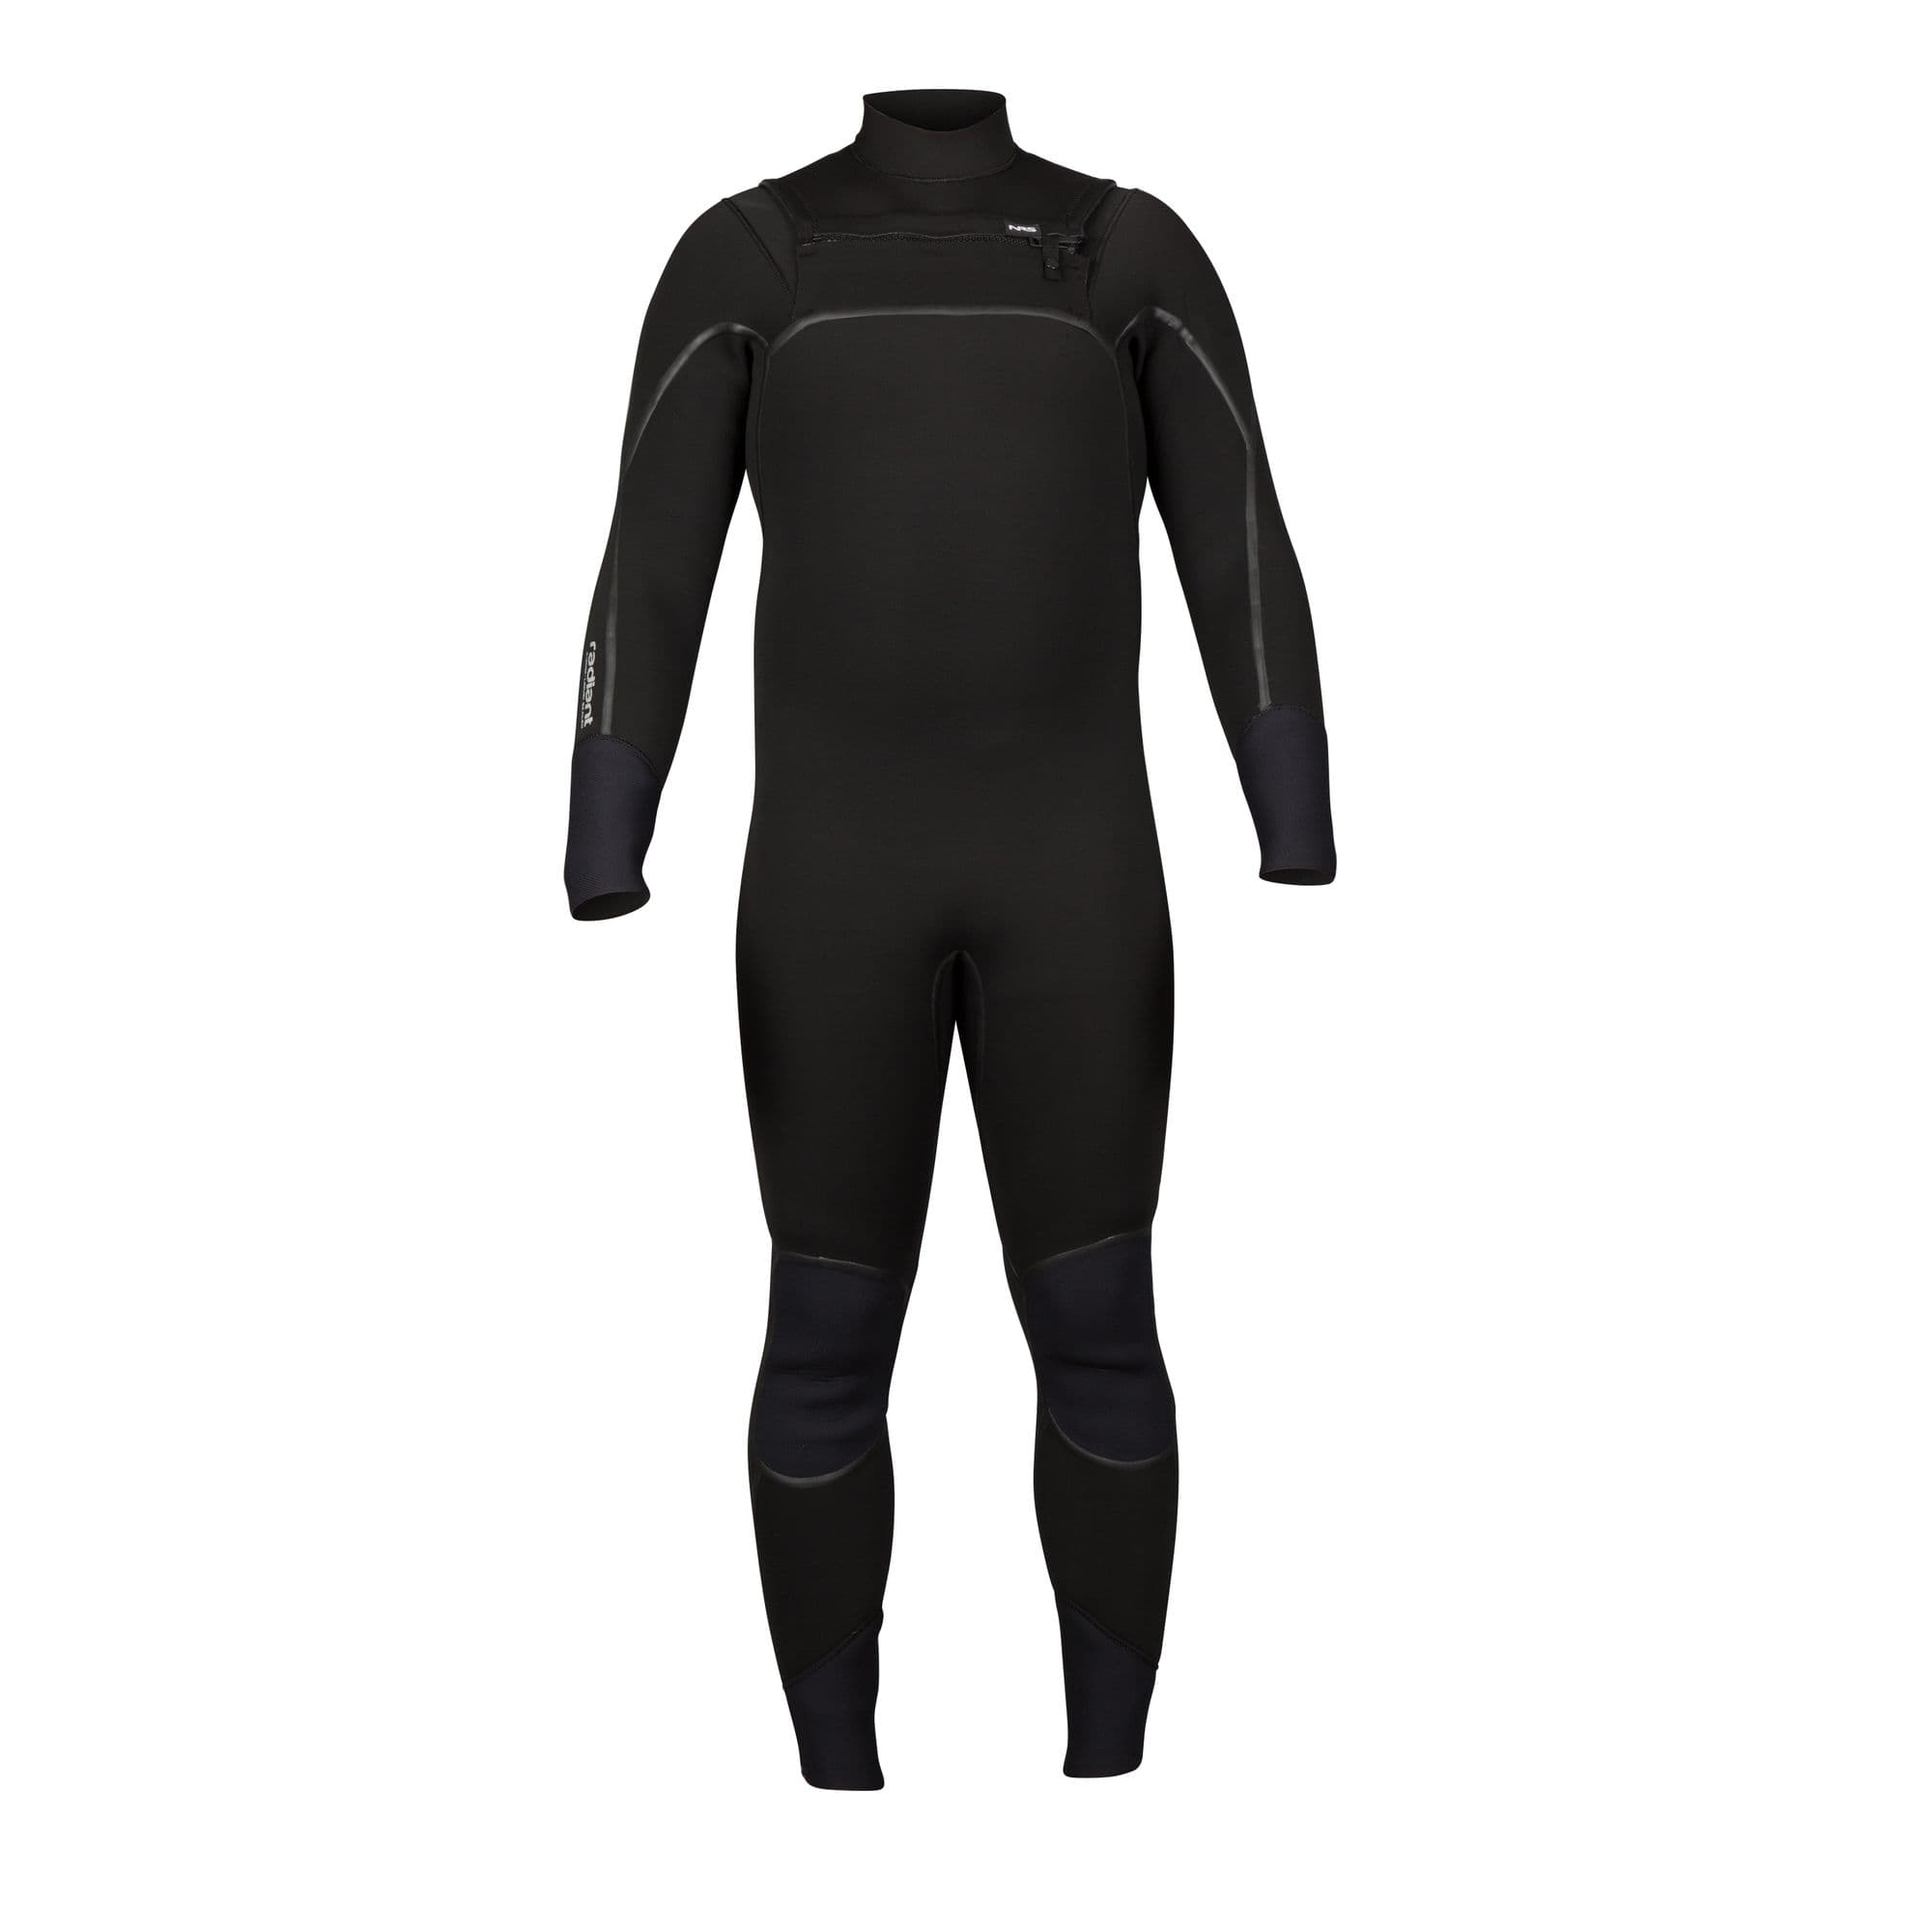 NRS Radiant Wetsuit